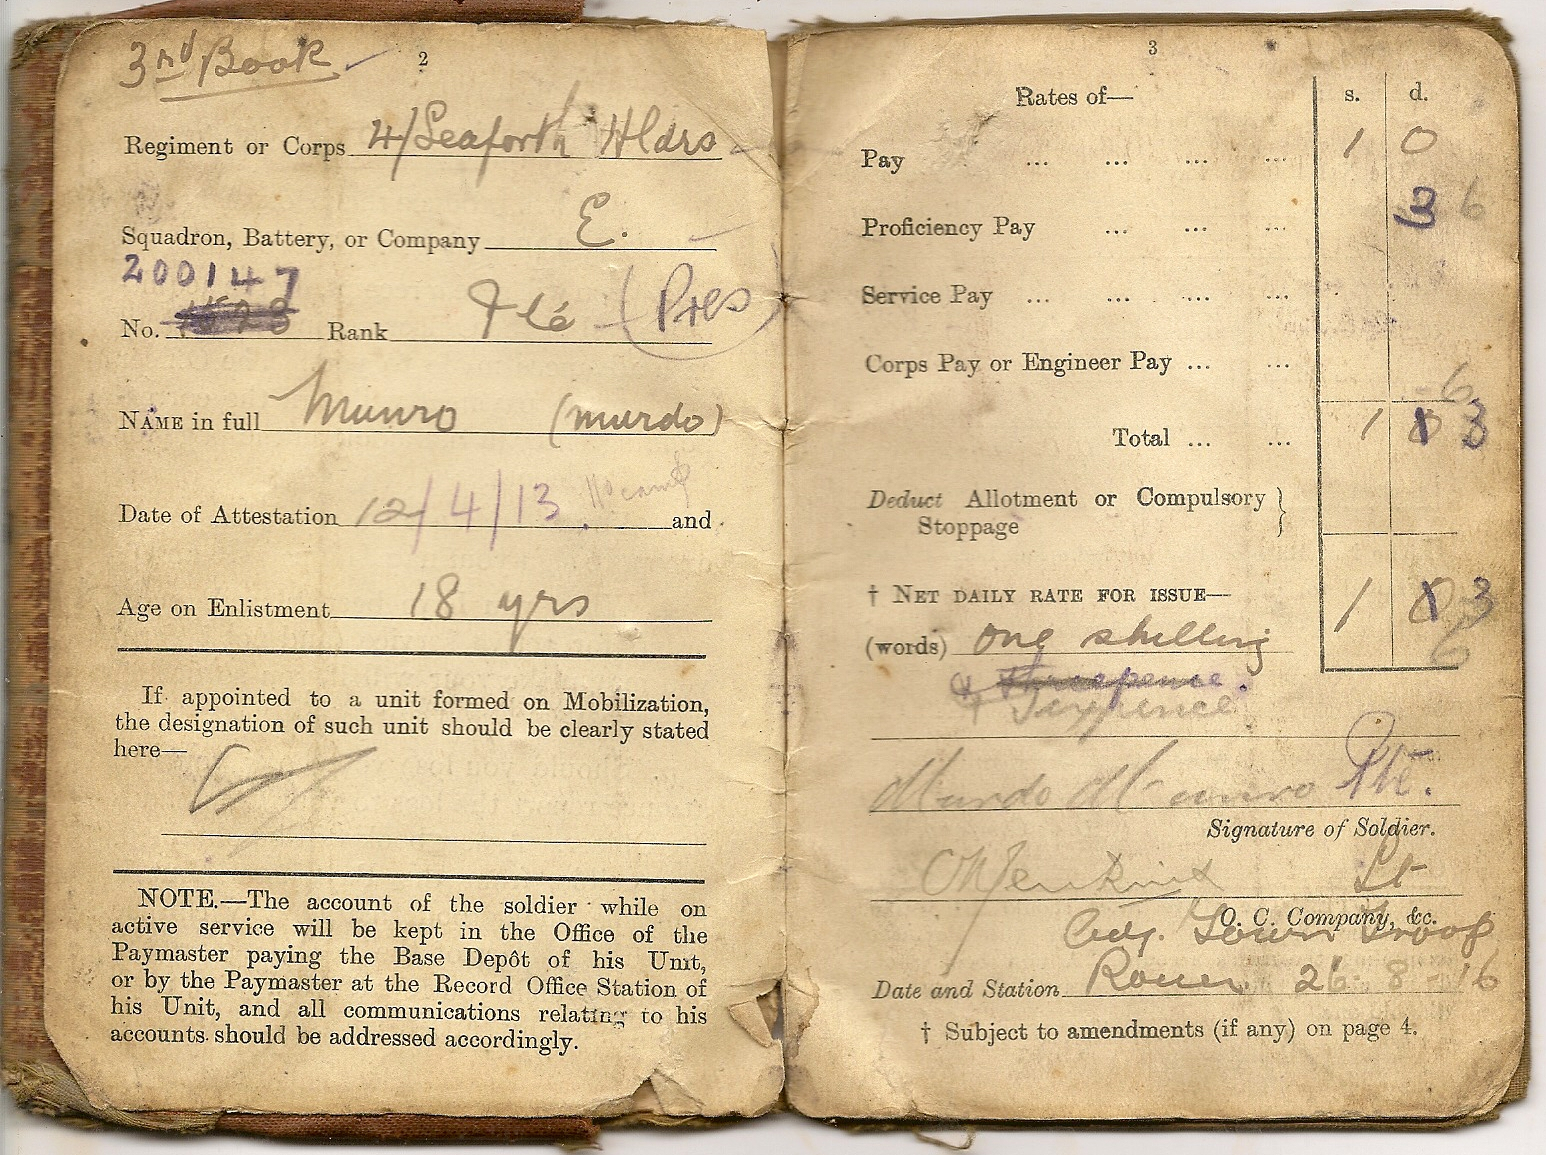 image of soldier's pay book pages 2 and 3